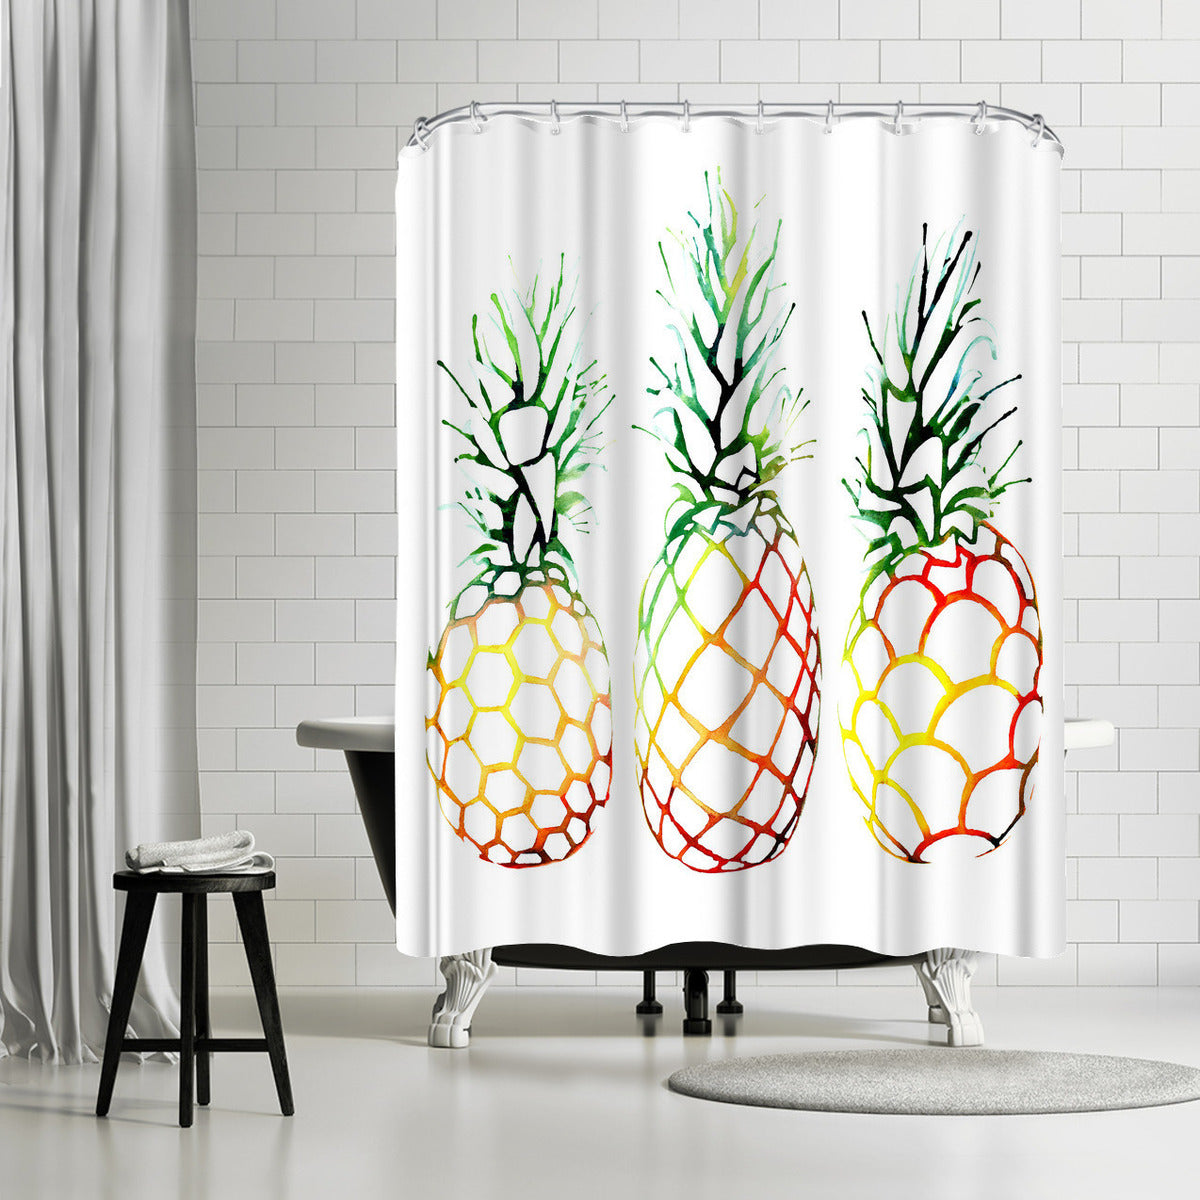 Retro Pineapples by Sam Nagel Shower Curtain -  - Americanflat